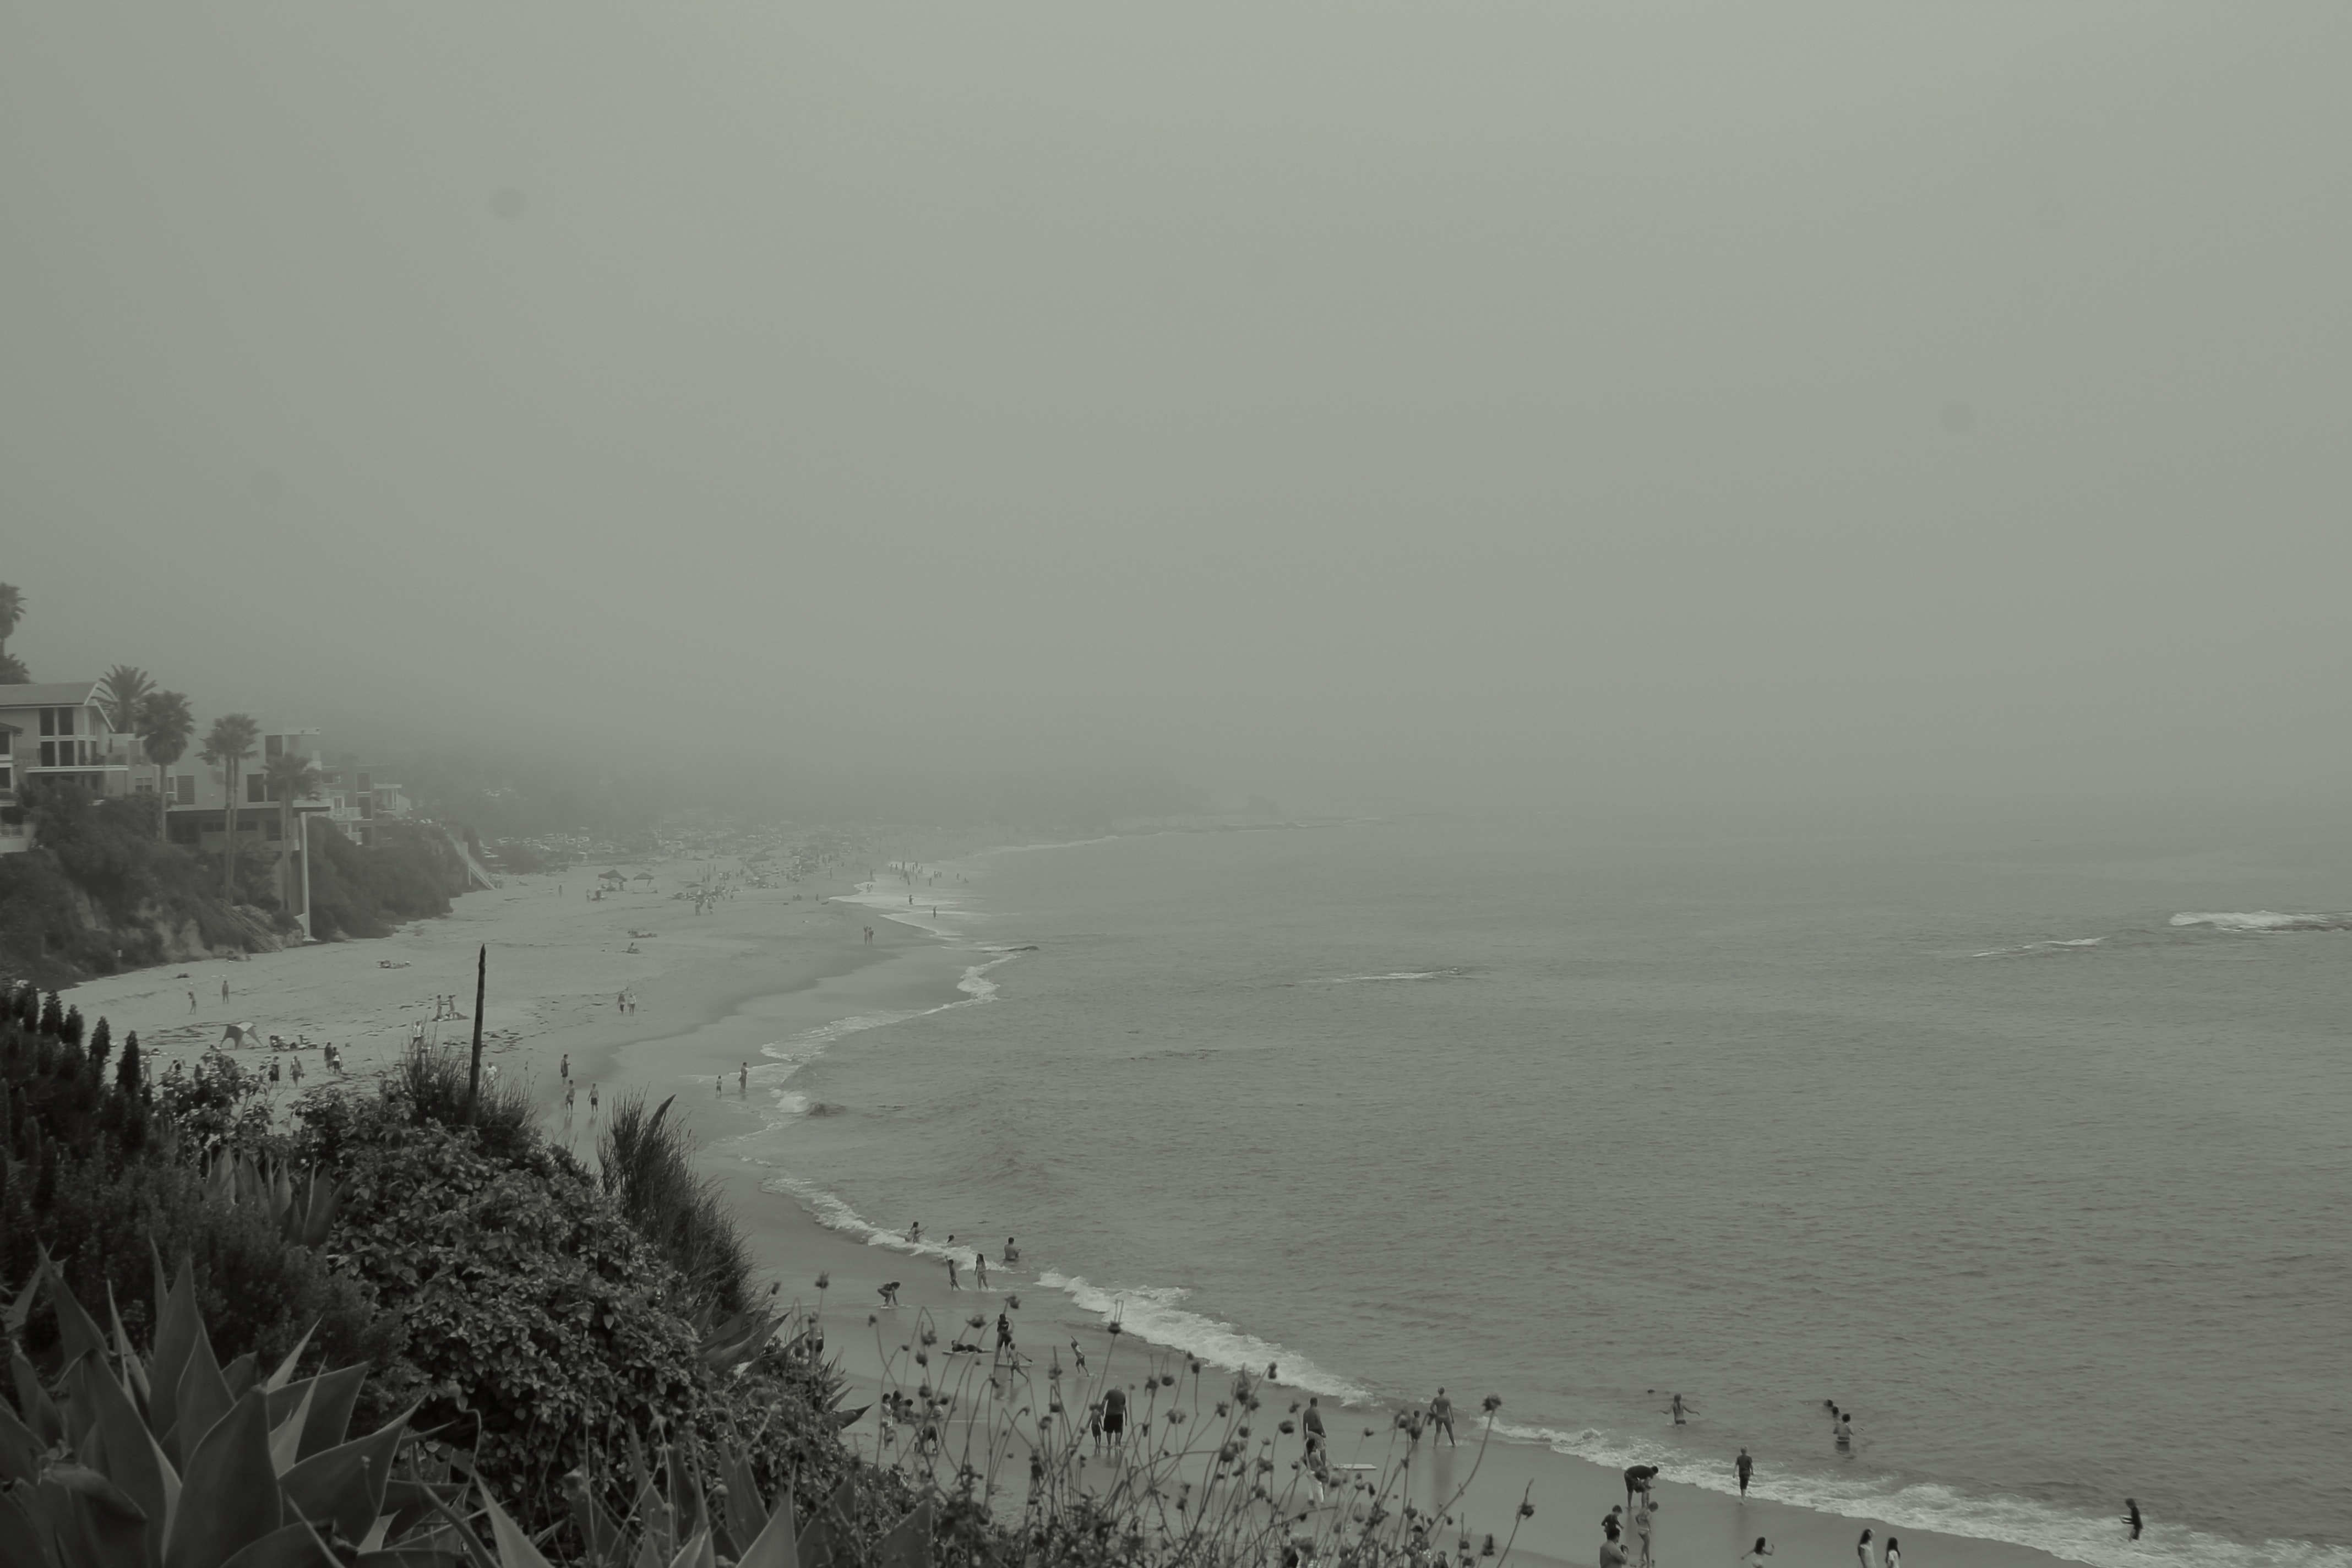 Gray seashore on a stormy day